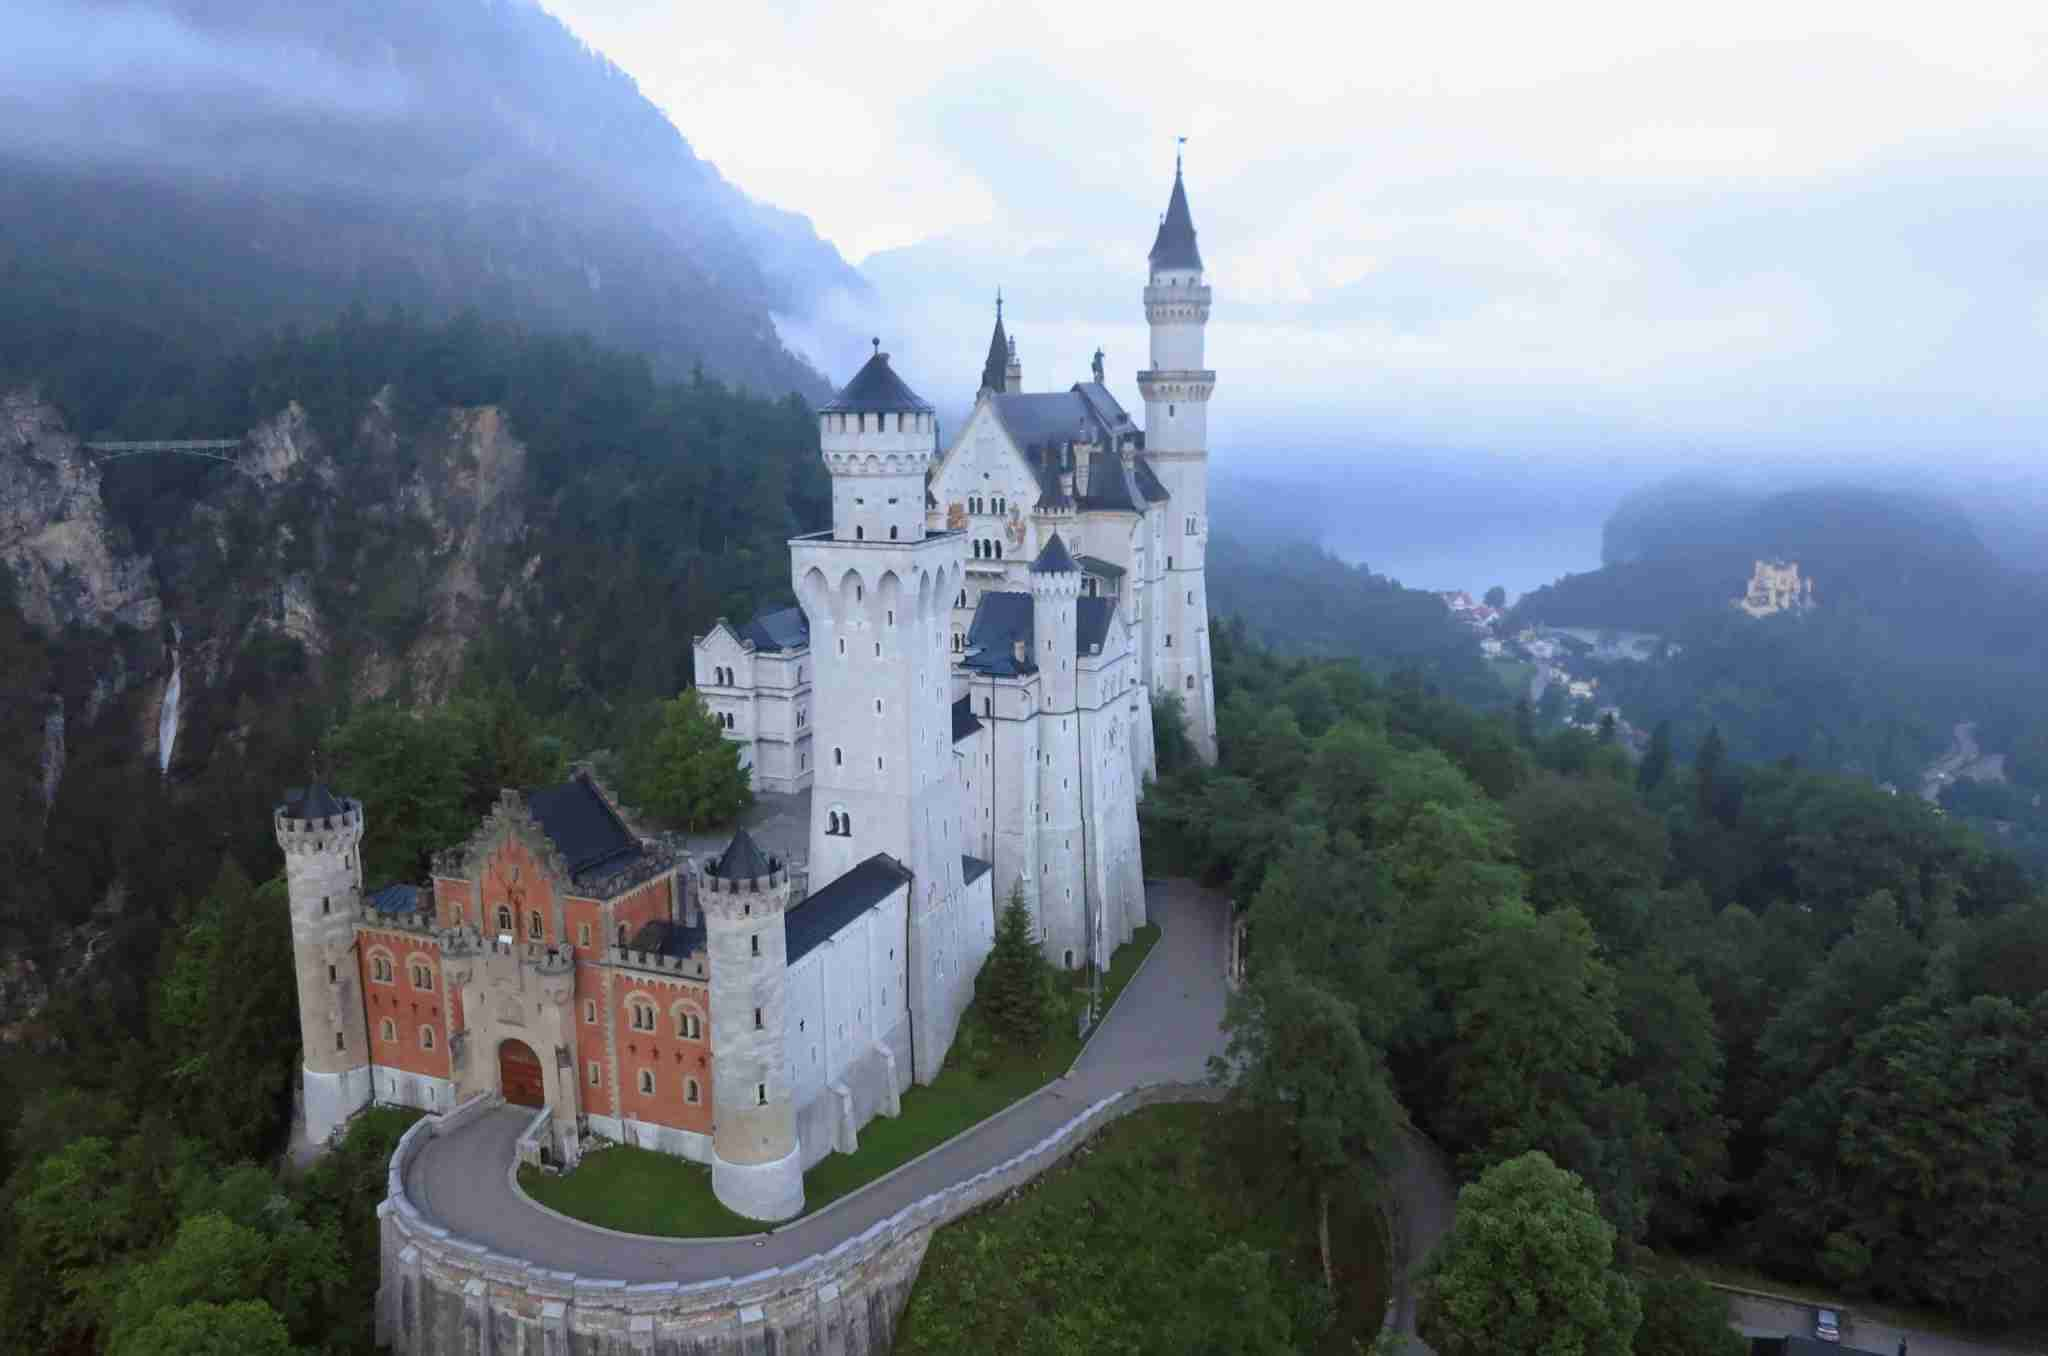 HOHENSCHWANGAU, GERMANY - JUNE 11: Schloss Neuschwanstein castle (L), as well as Schloss Hohenschwangau (R, in the distance), stand in this aerial view in the early morning on June 11, 2015 near Hohenschwangau, Germany. Schloss Neuschwanstein, built by Bavarian King Ludwig II, also known as Mad King Ludwig, is among Bavaria